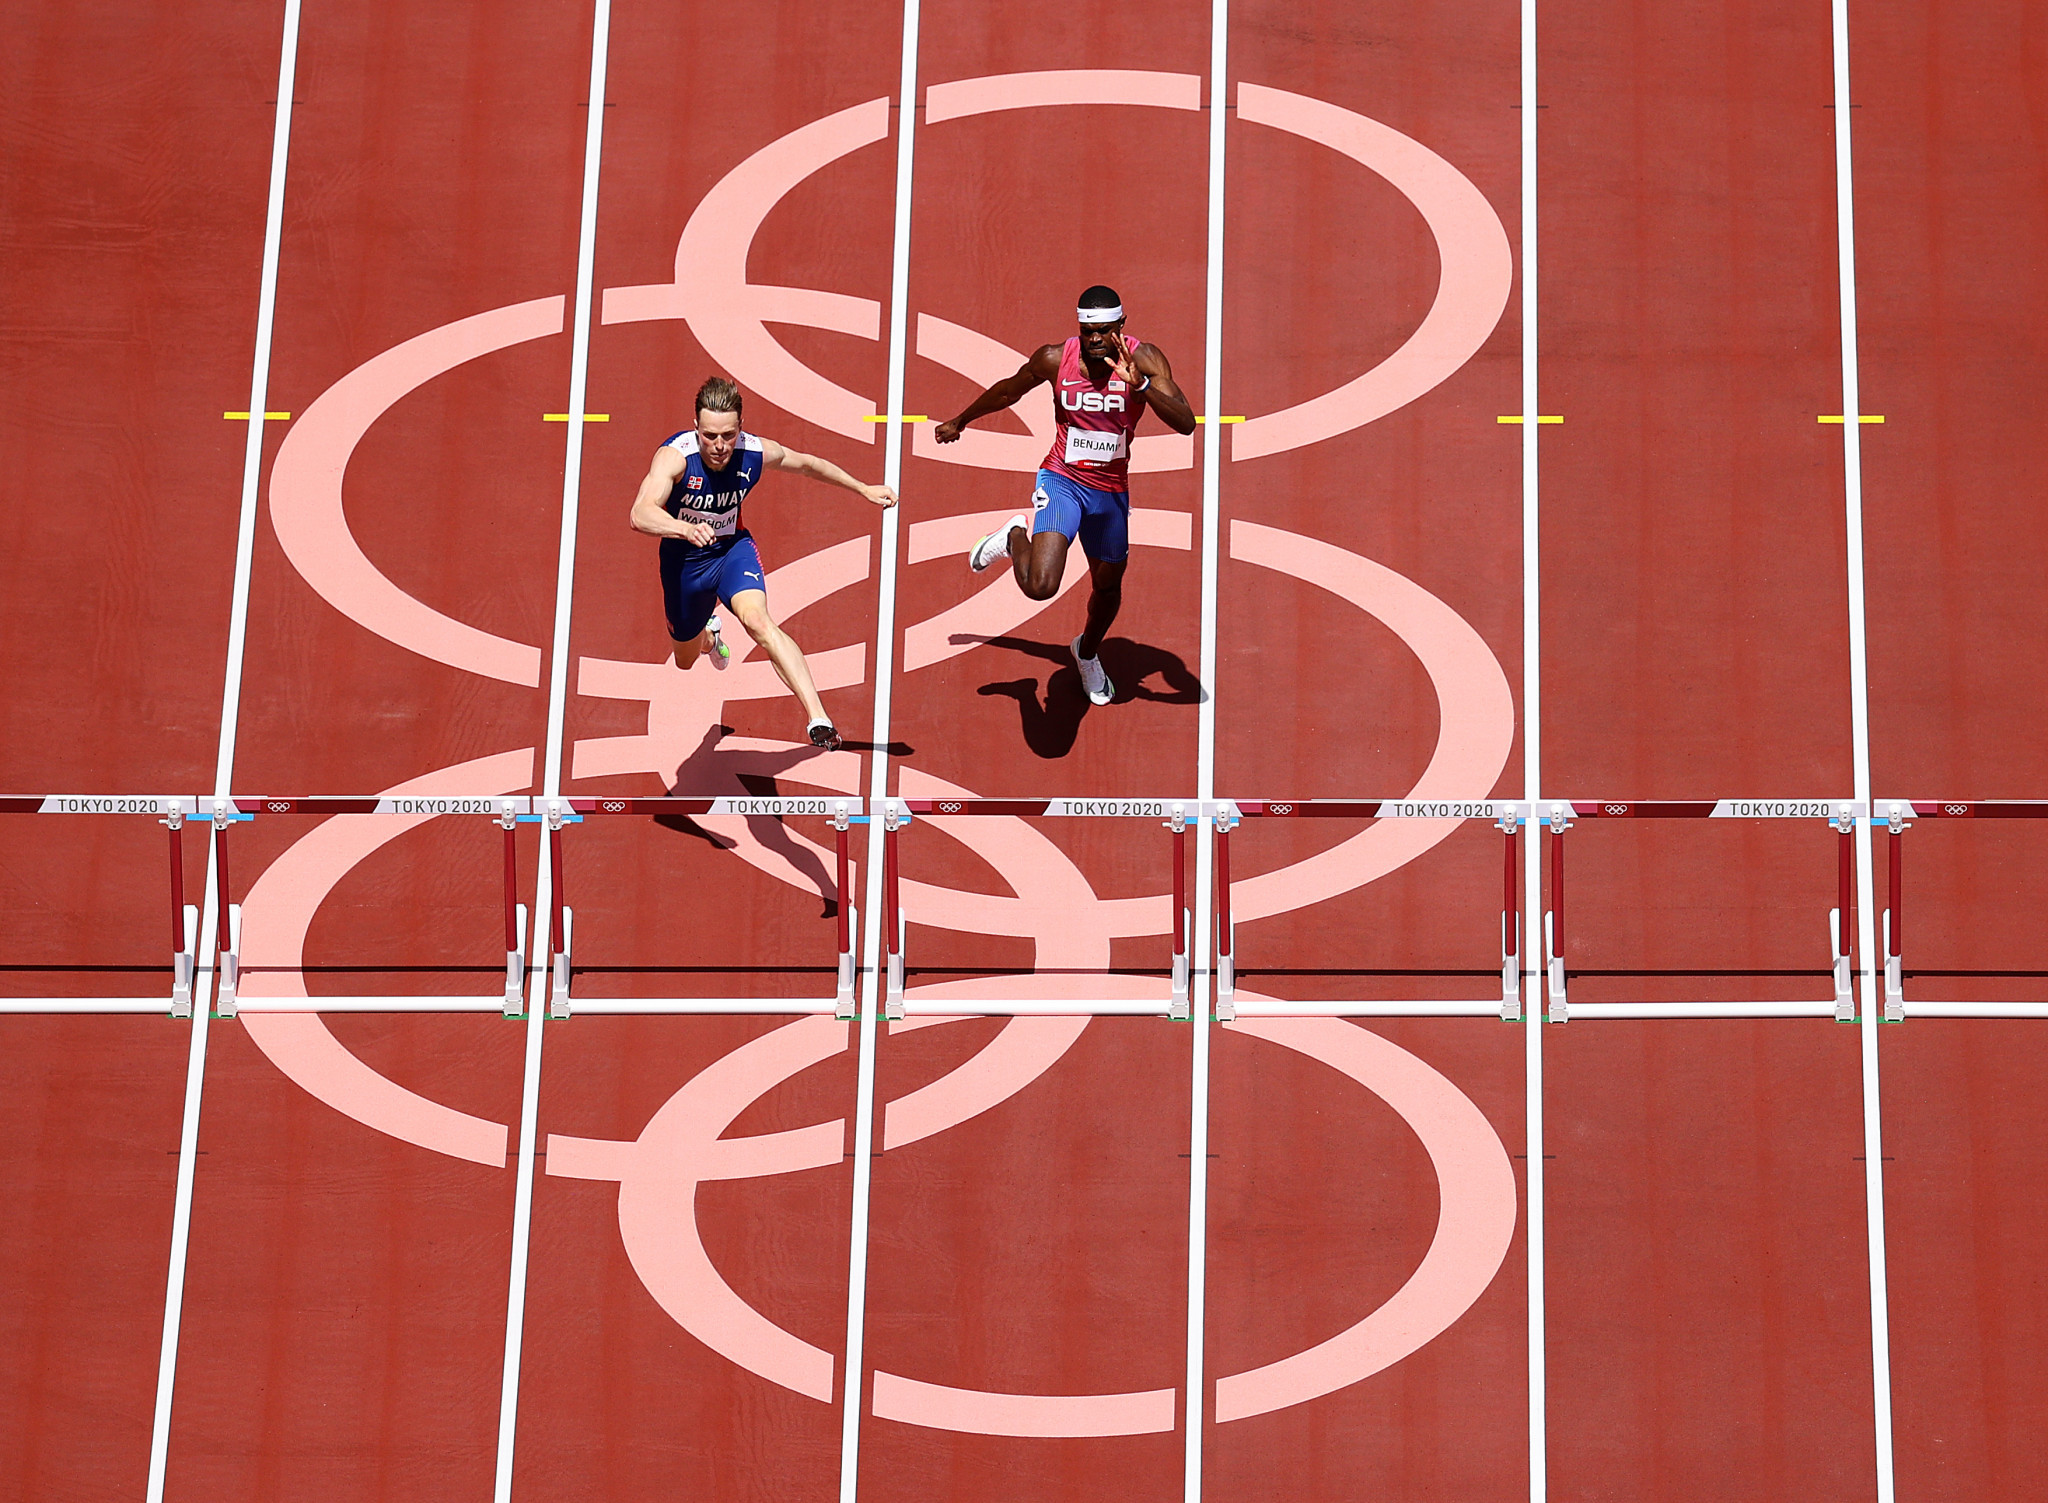 Norway's Karsten Warholm proved stronger than great rival, Rai Benjamin of the United States, in the closing stage of an epic 400m hurdles ©Getty Images